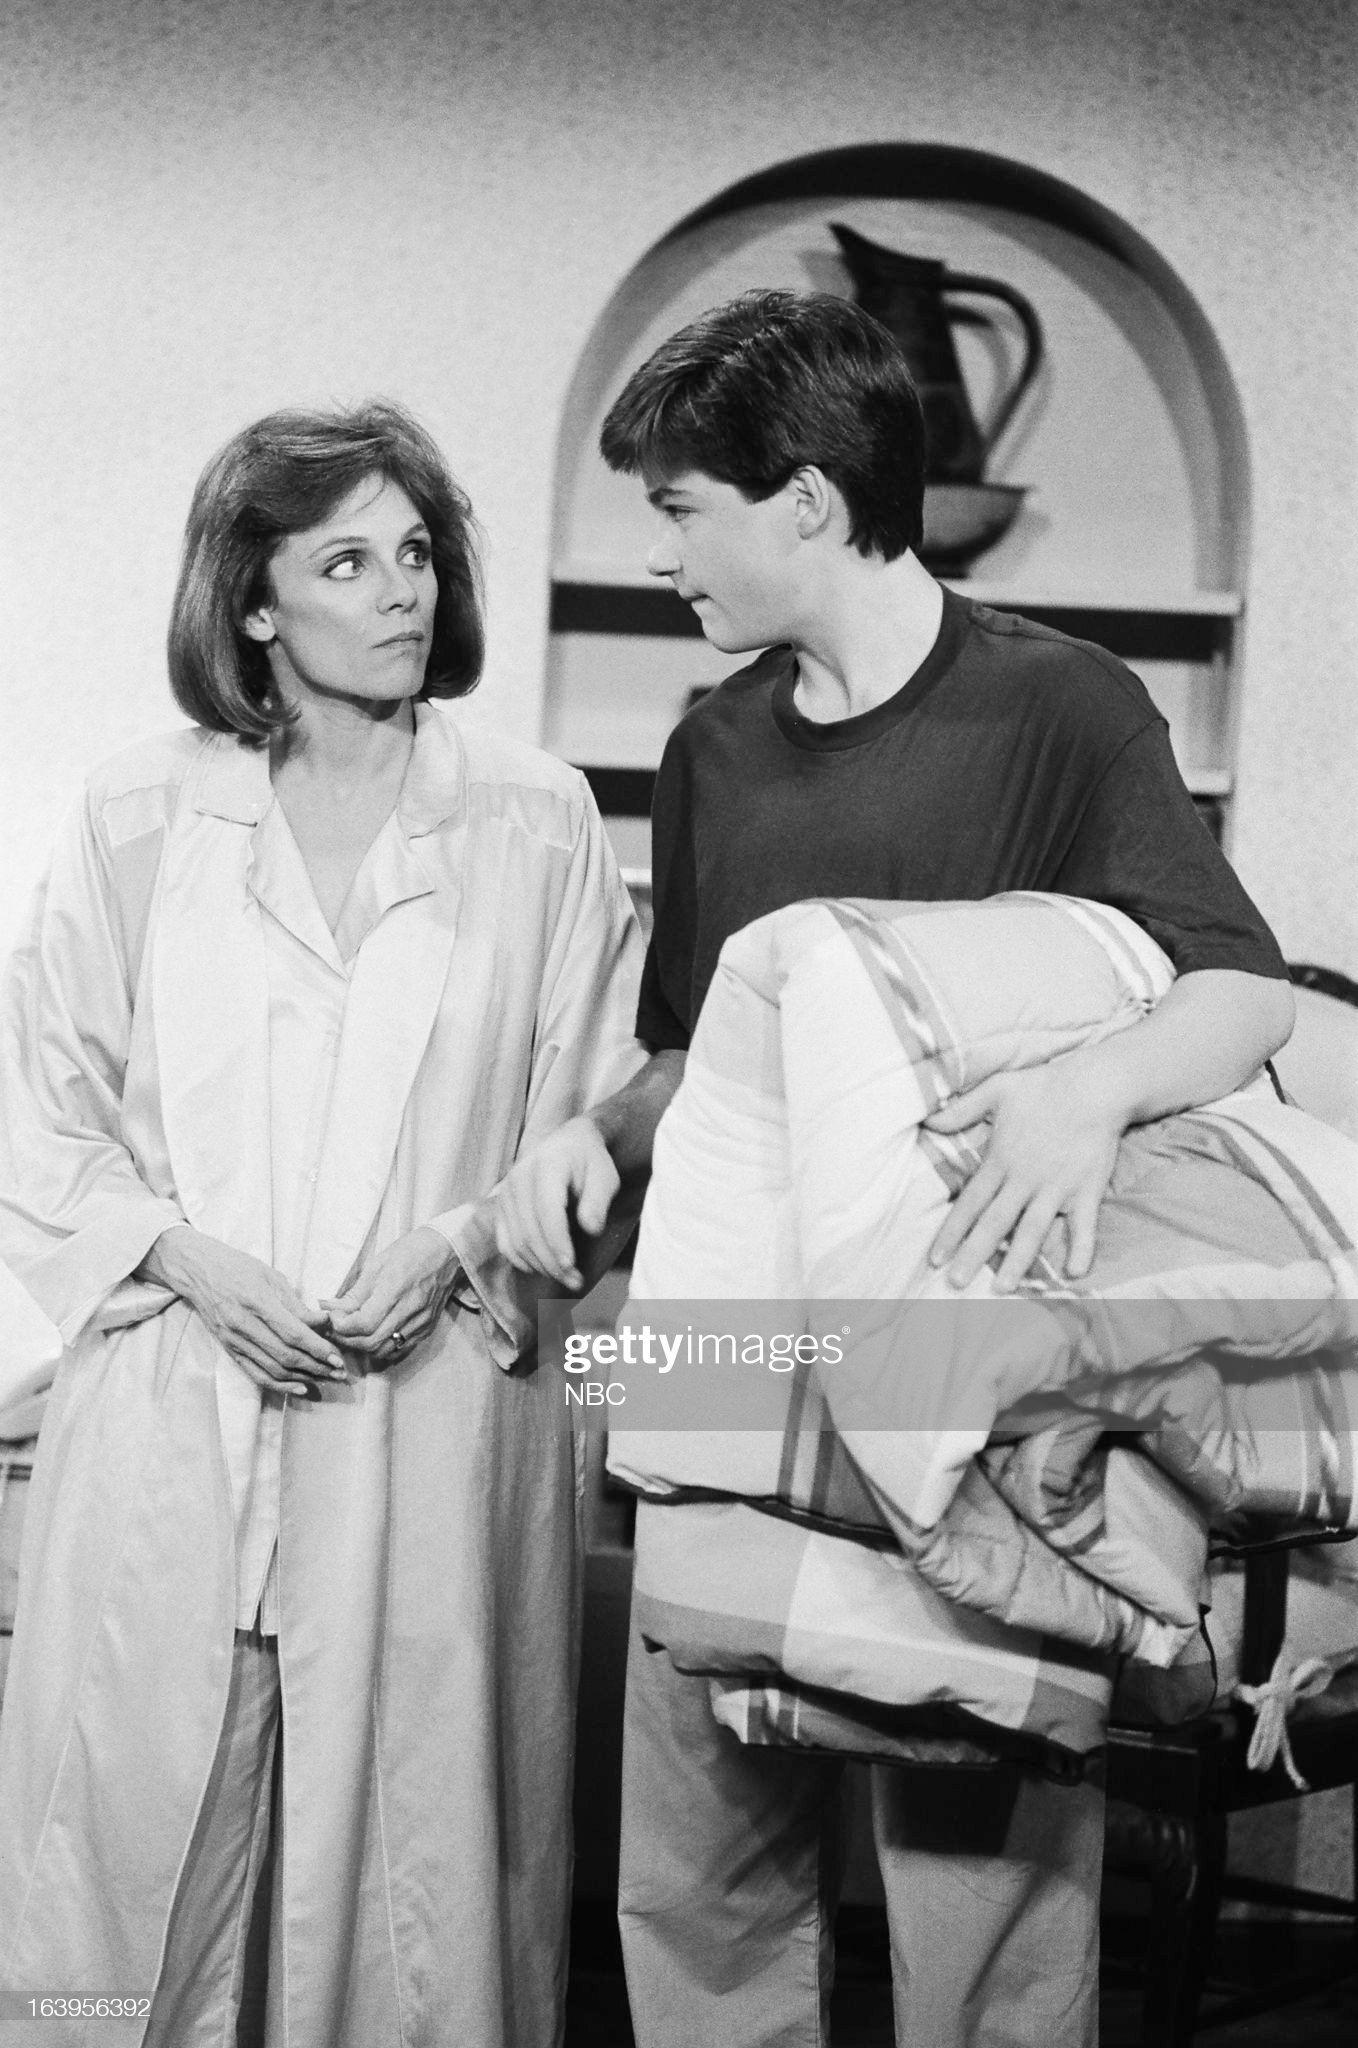 dog-day-afternoon-episode-106-pictured-valerie-harper-as-valerie-picture-id163956392